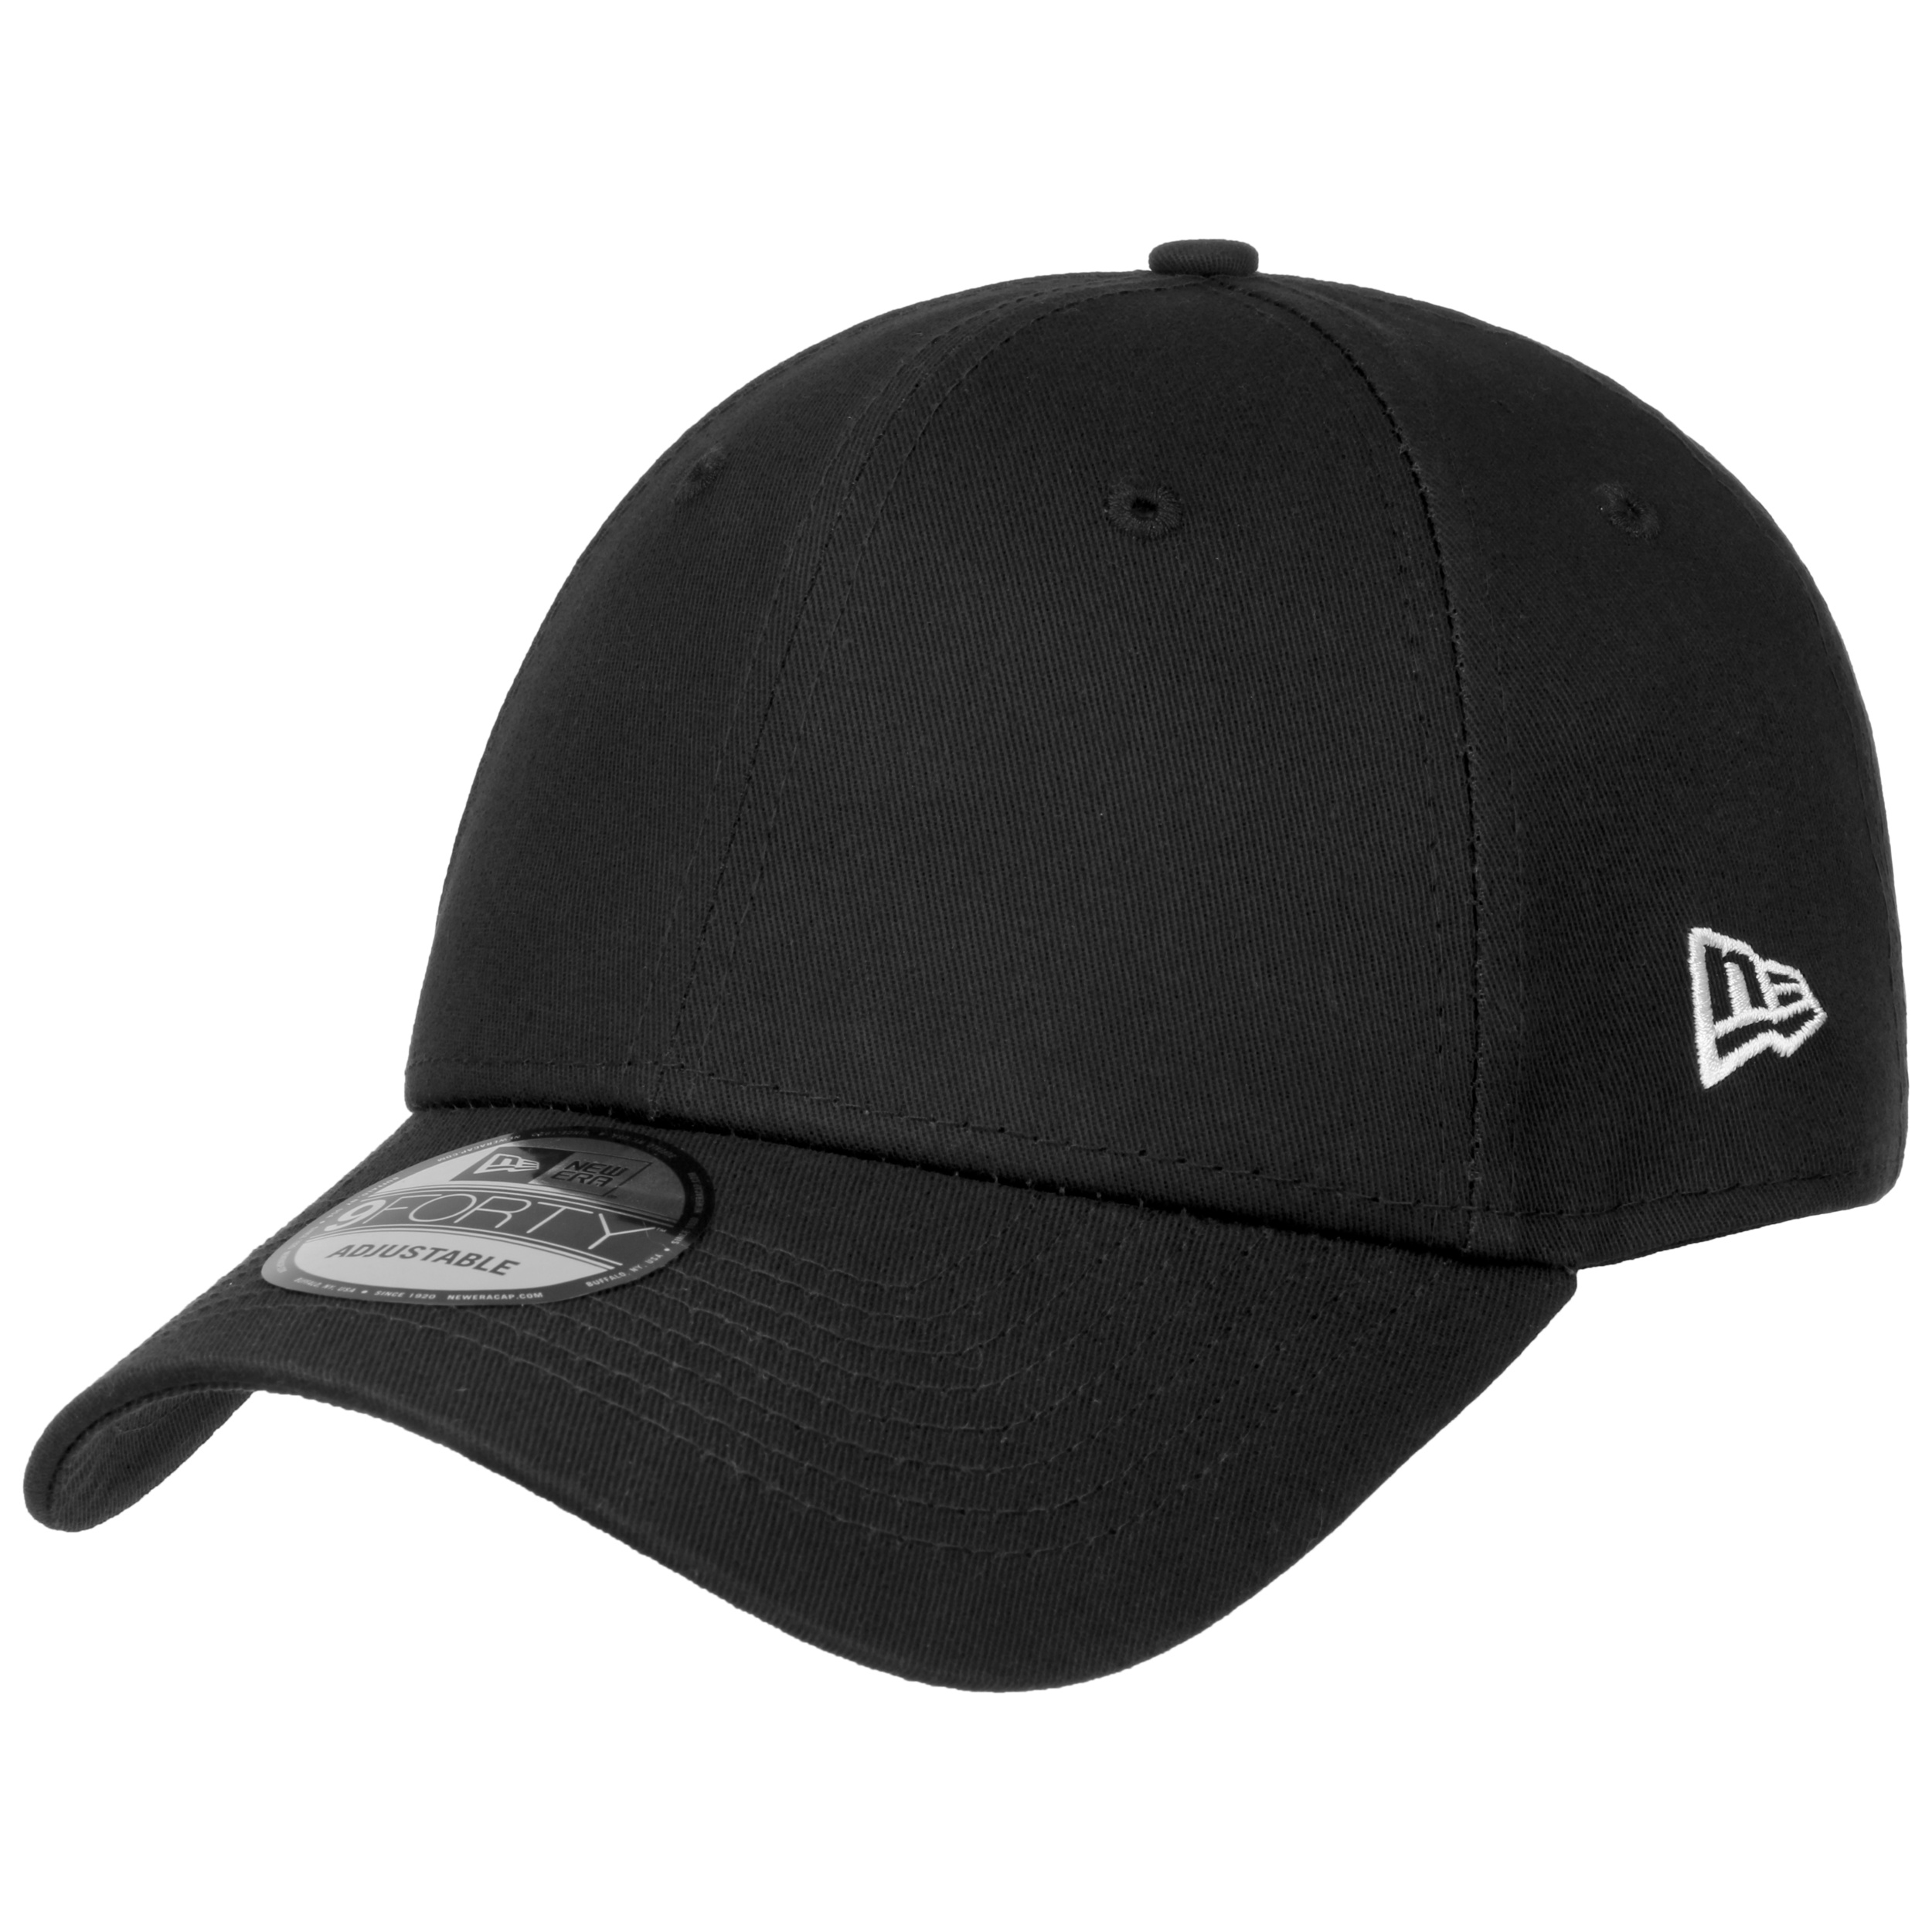 6d73eac40254 ... 9Forty Basic Strapback Cap by New Era - schwarz 6 ...